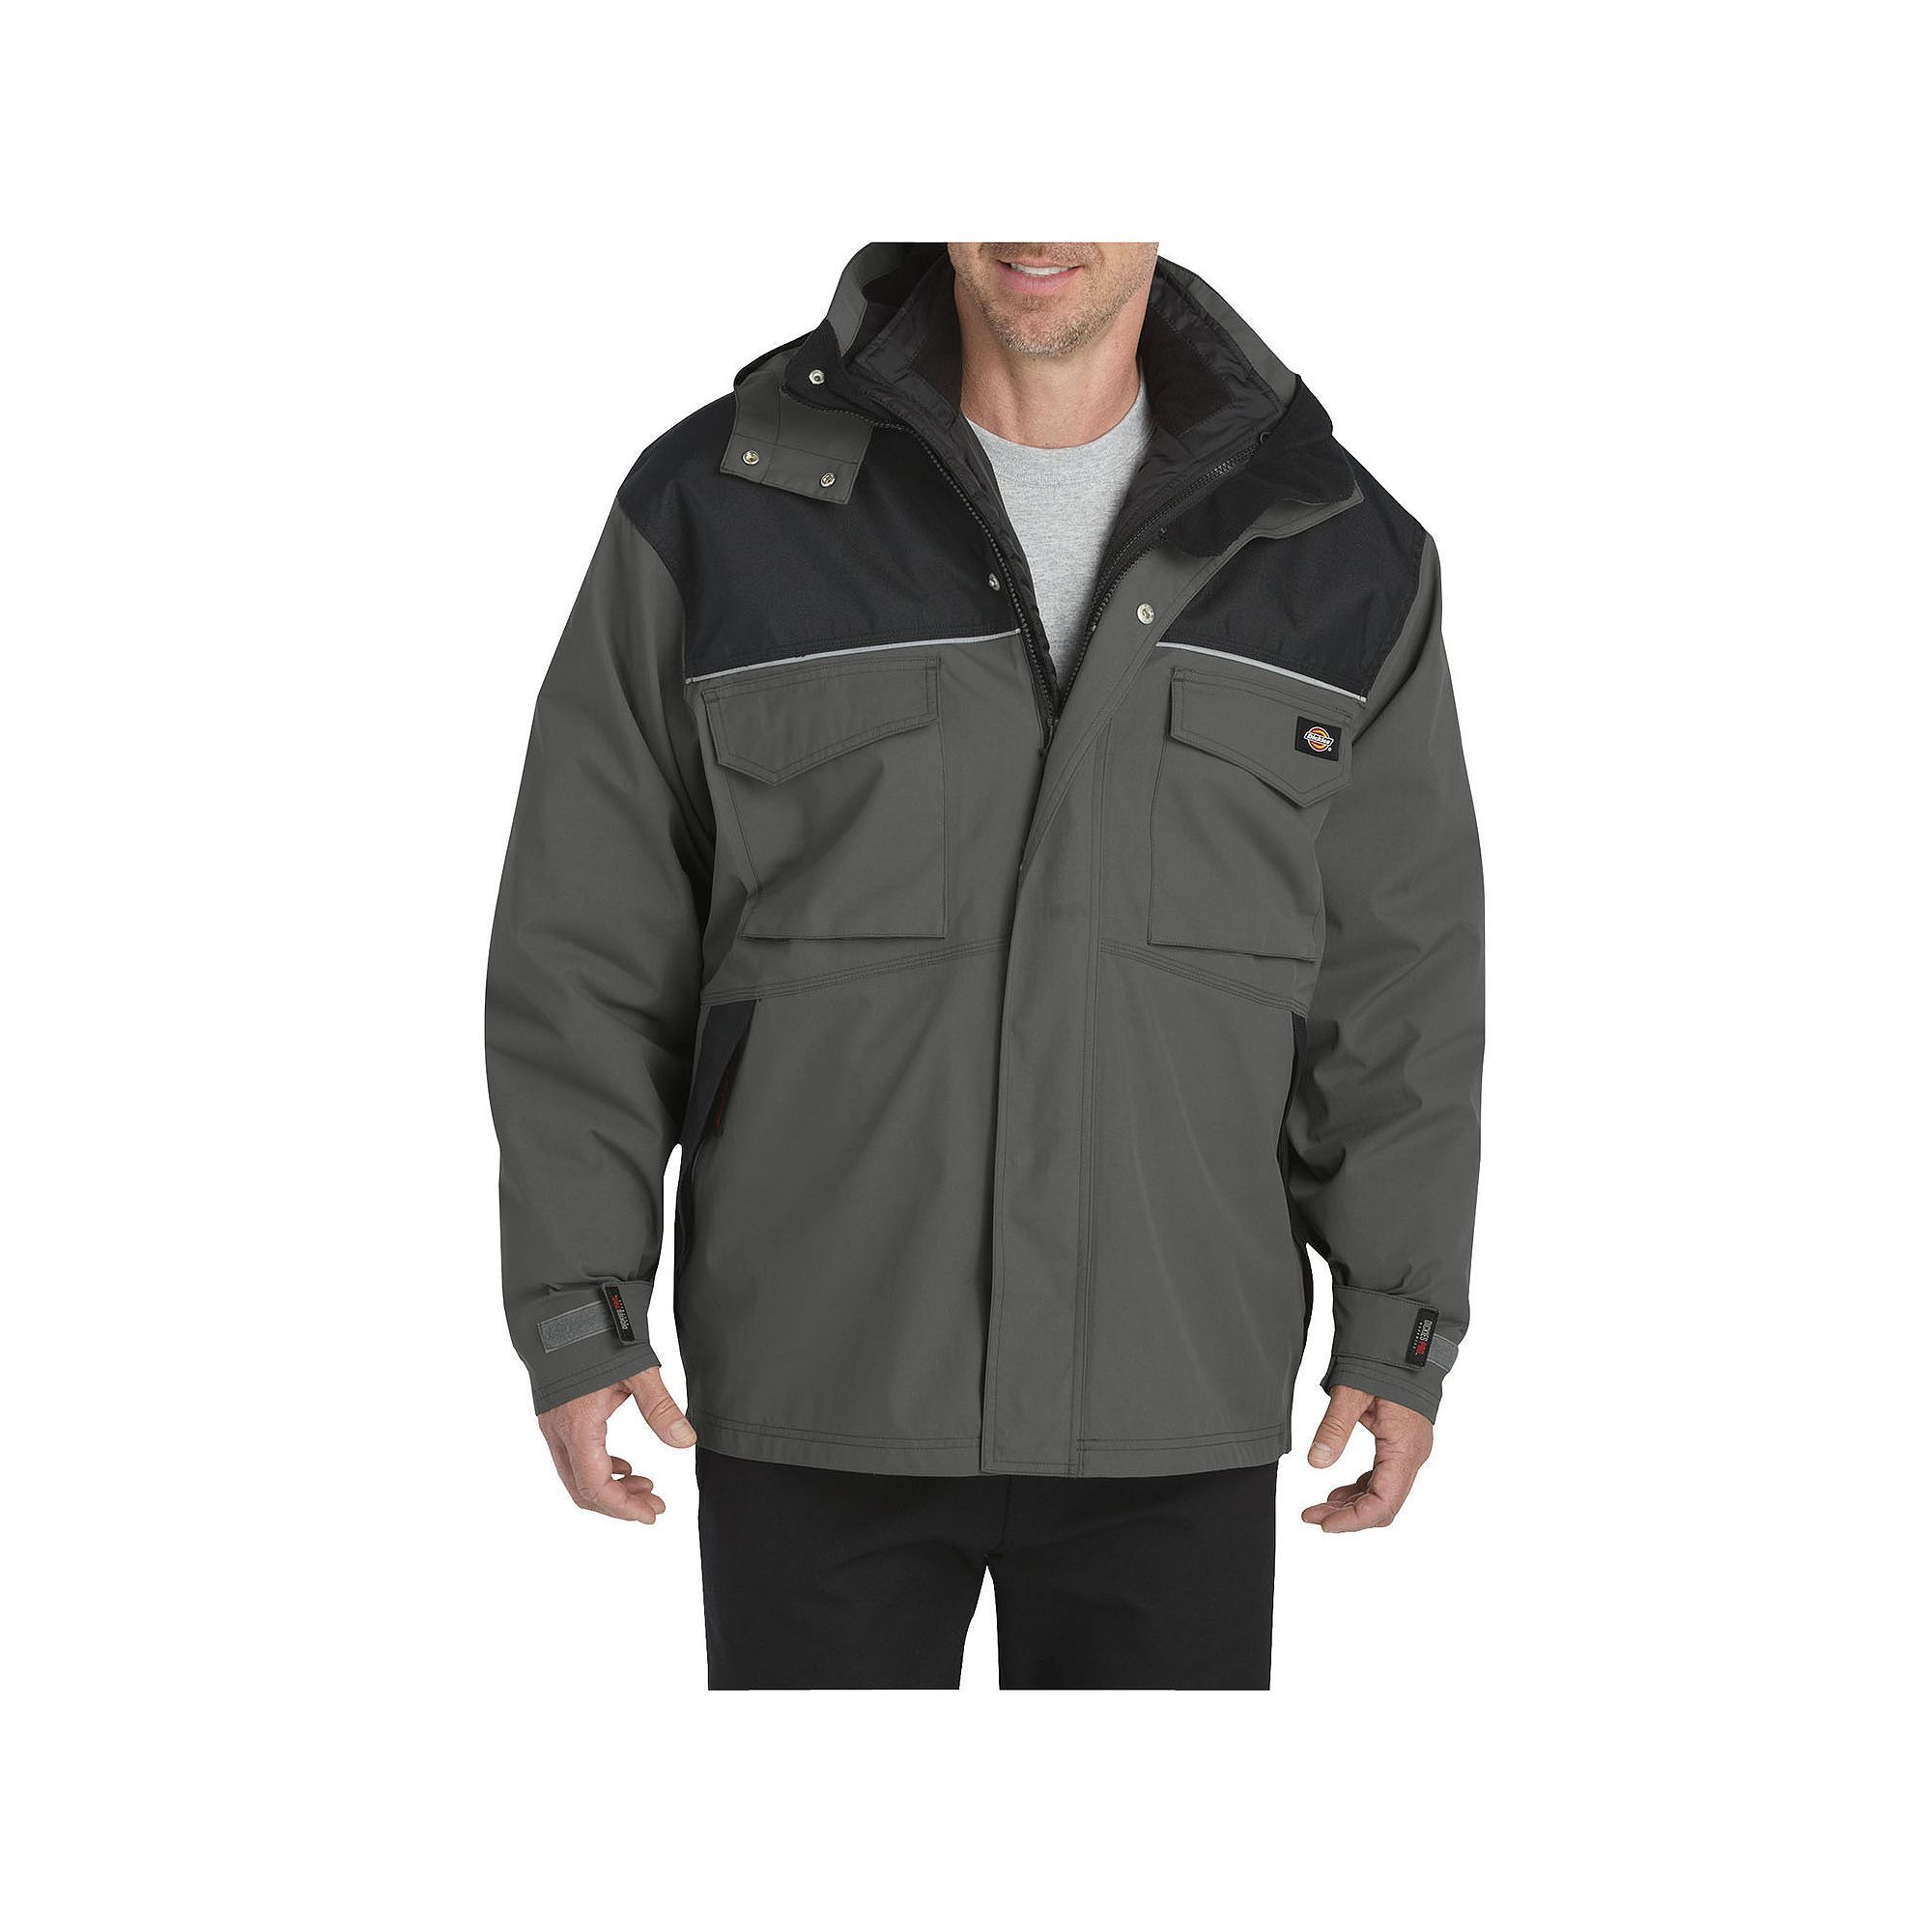 7d8b3ba7629d0 Dickies Men's Jasper Extreme Hooded Jacket | Products | Hooded ...